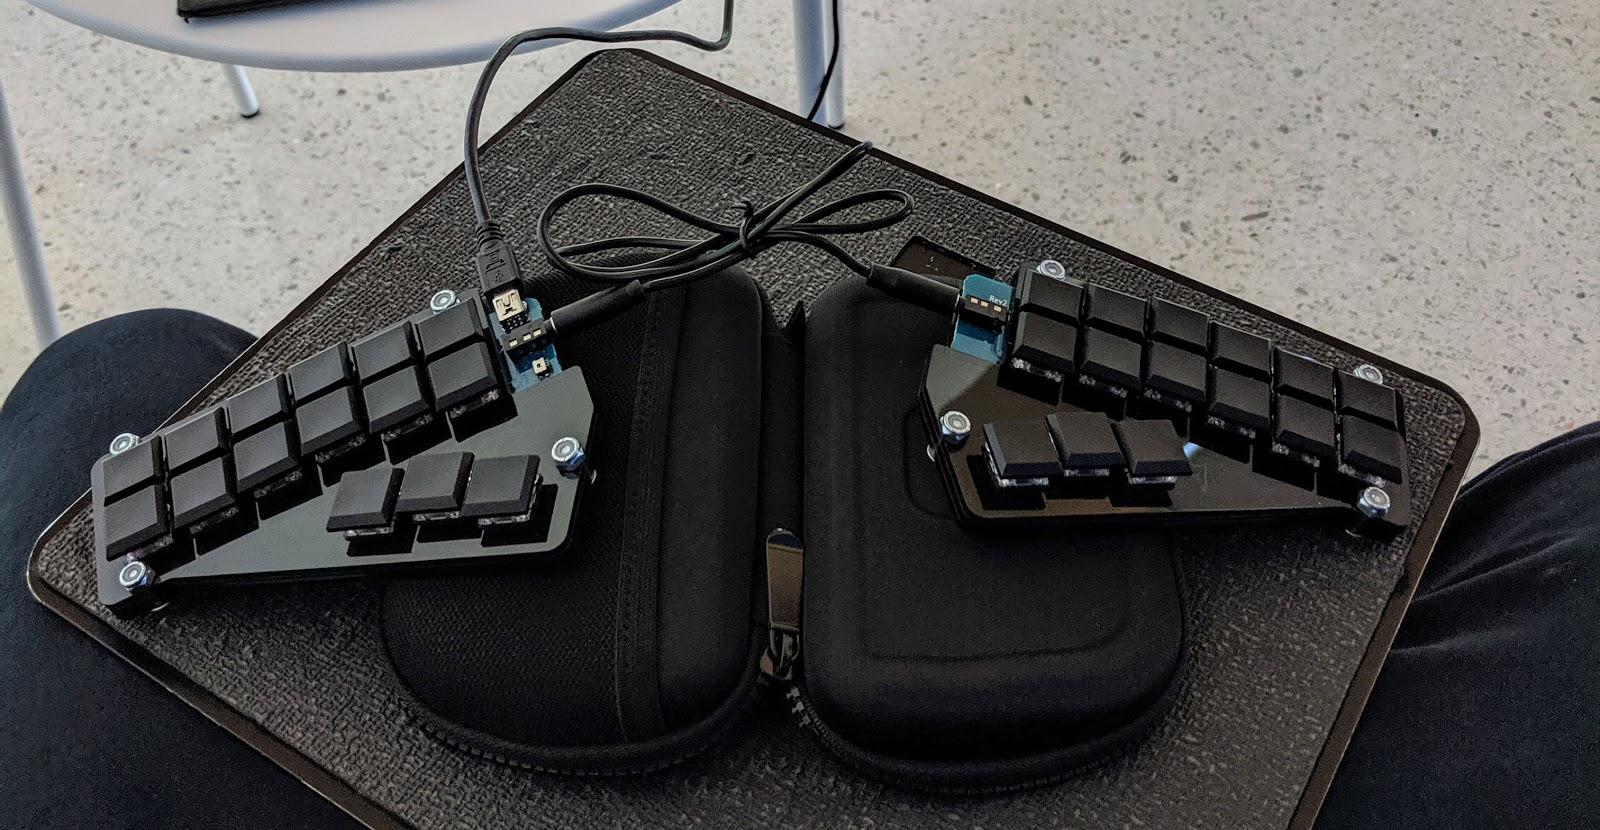 A Georgi keyboard resting on a laptop tripod with a Polarpro Osmo Pocket case propping up each side